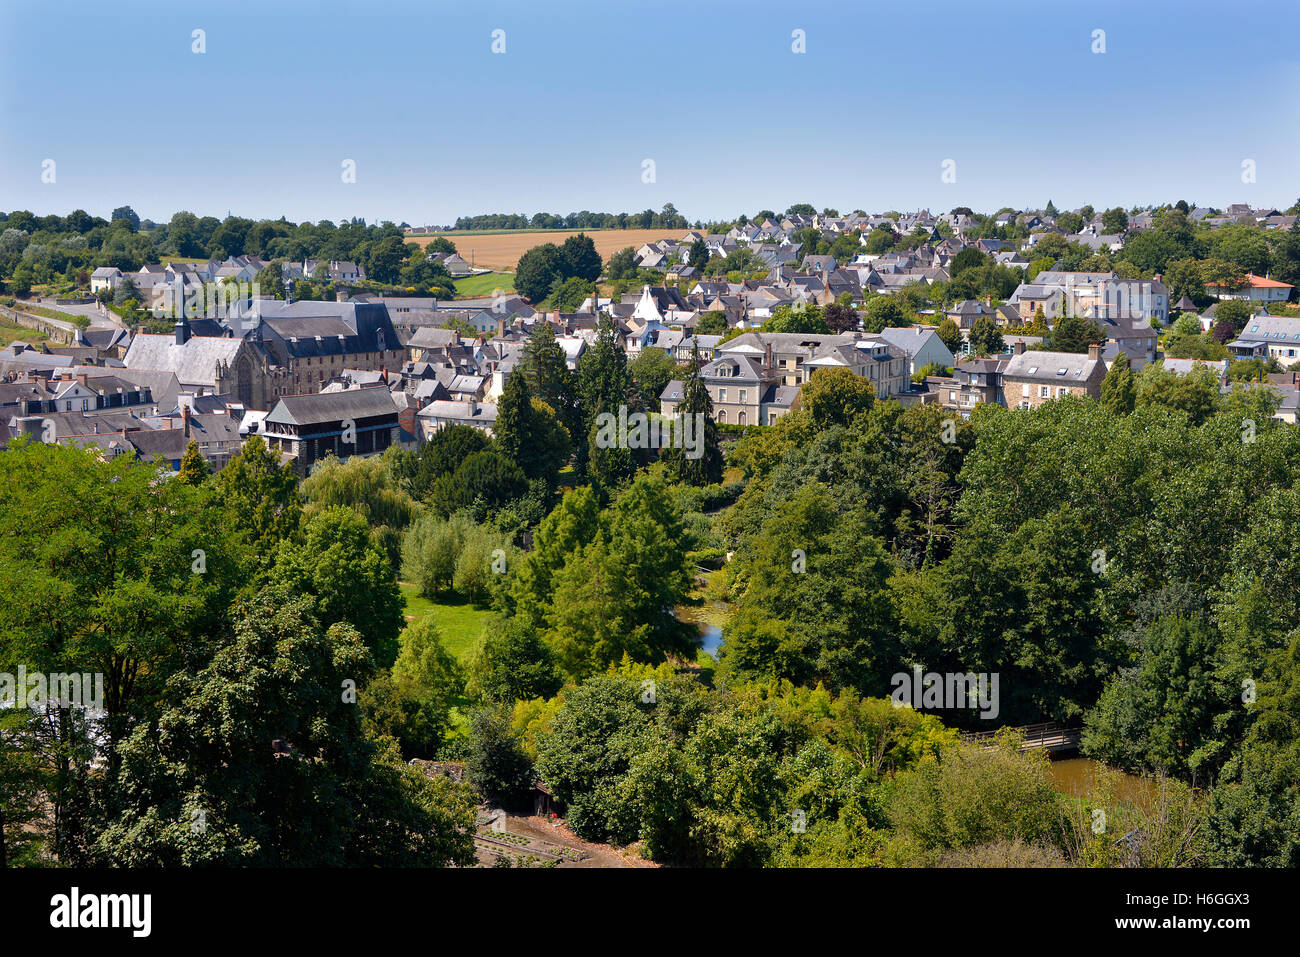 Aerien view of Vitré known for its medieval castle, commune in the Ille-et-Vilaine department in Brittany in - Stock Image